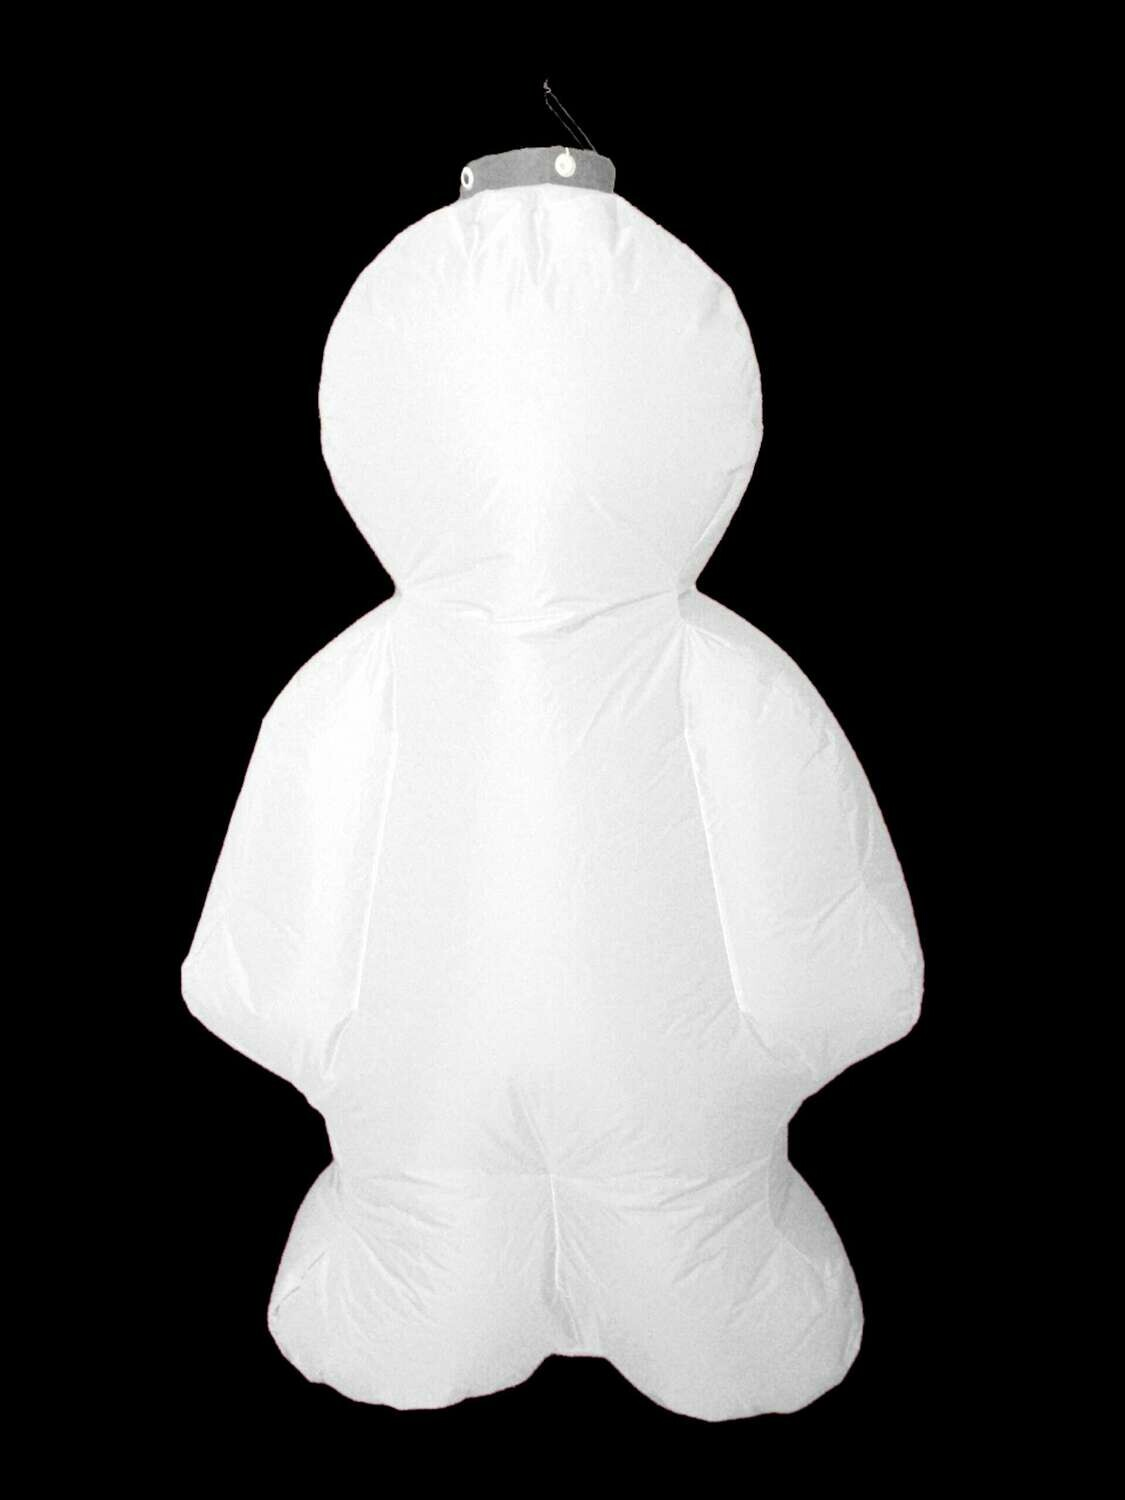 Hanging Inflatable Jelly Baby 2.4ft/74cm x 4ft/122cm